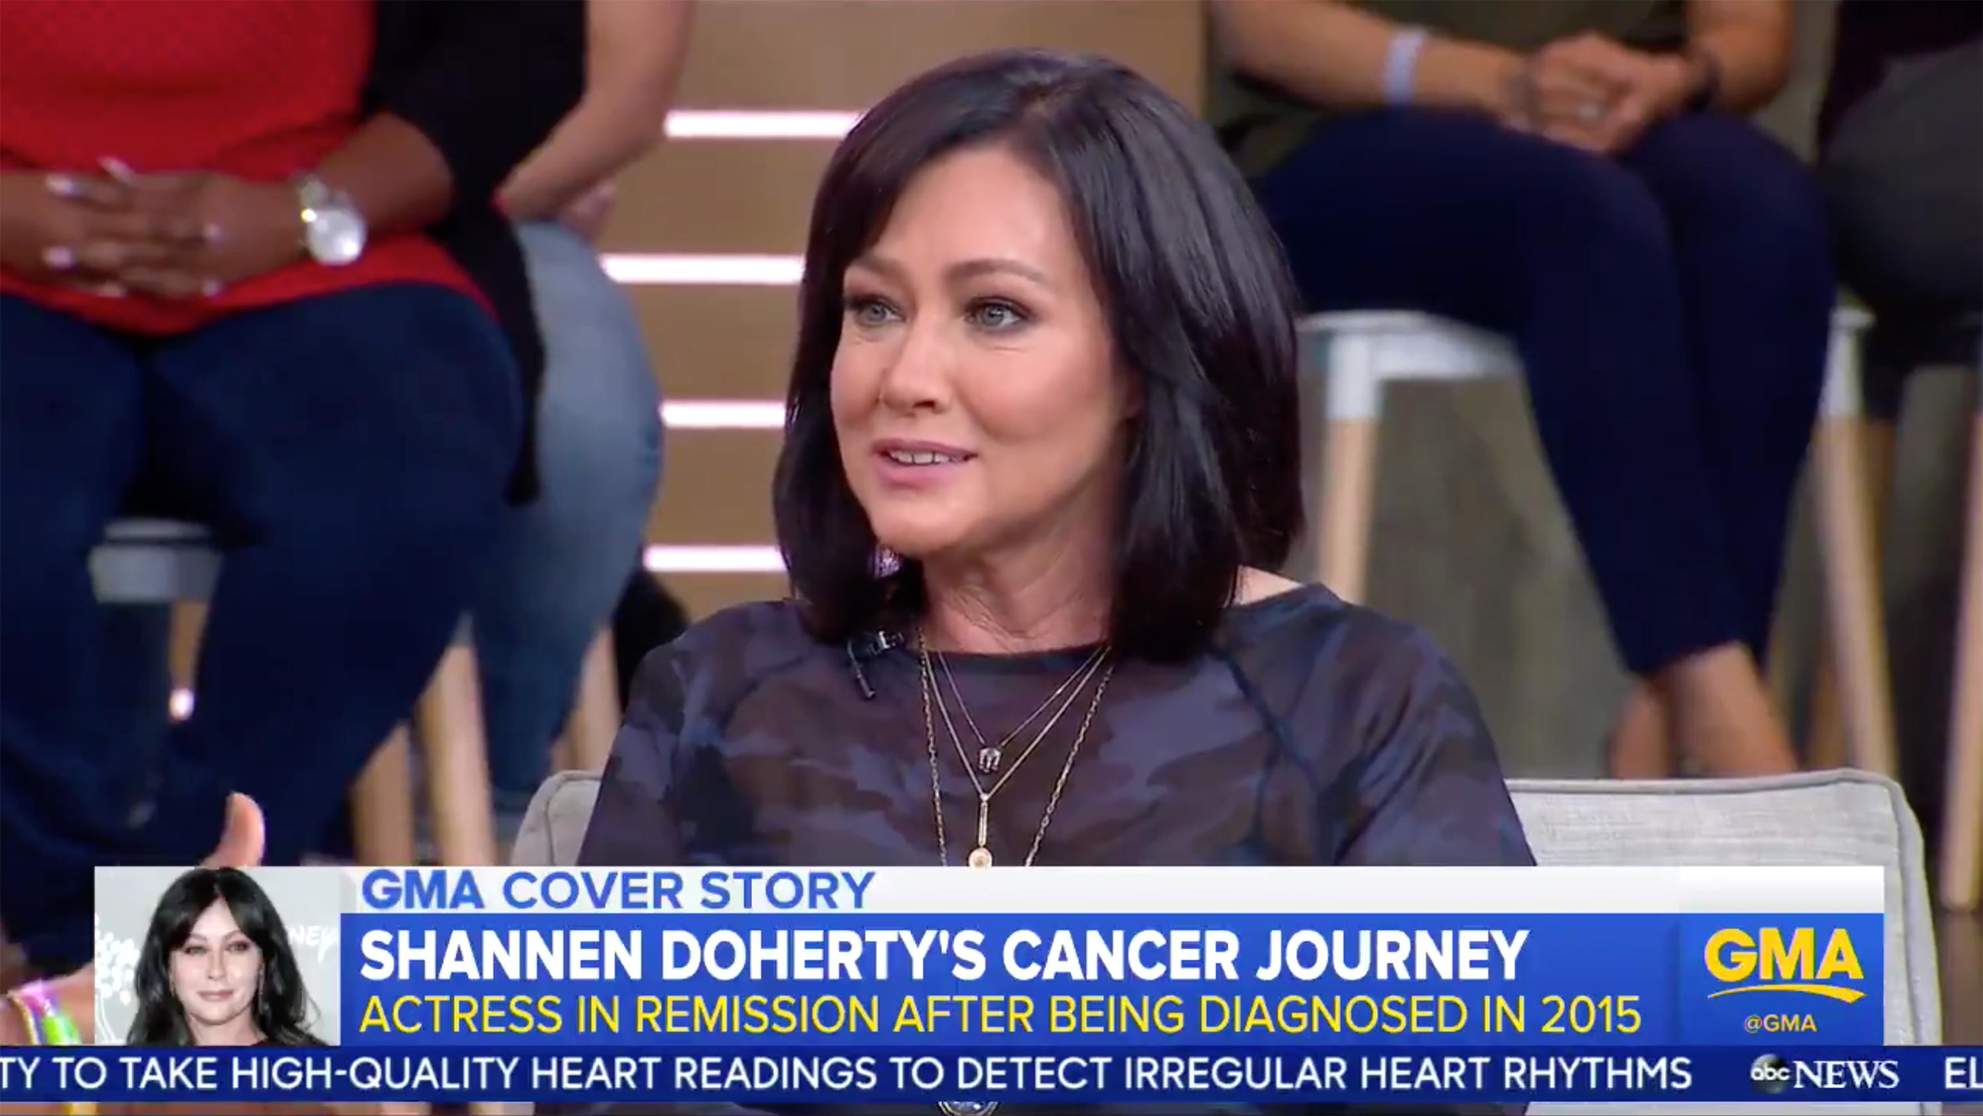 Shannen Doherty on Her Breast Cancer Remission: 'My Whole Life Has Been About This Battle'